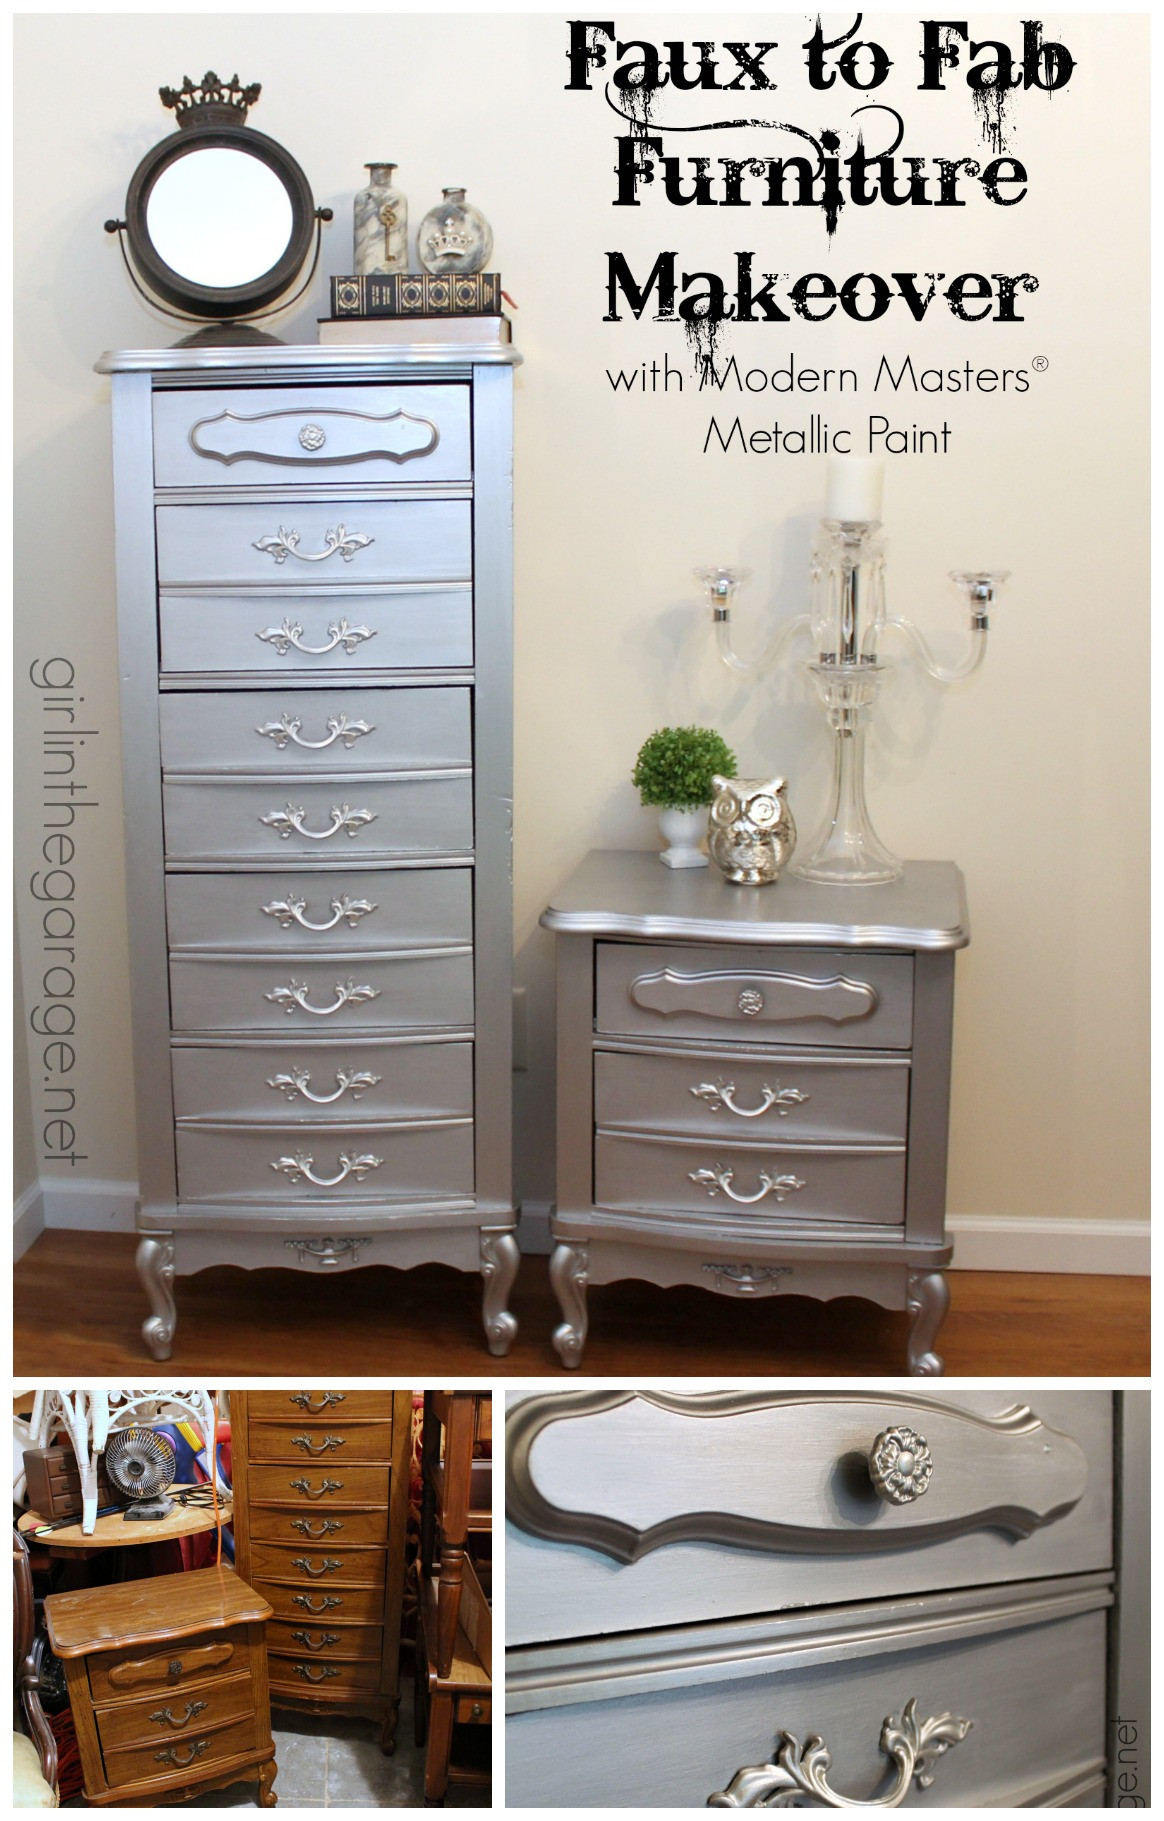 Faux To Fab Metallic Furniture Makeover With Modern Masters Paint Girl In The Garage